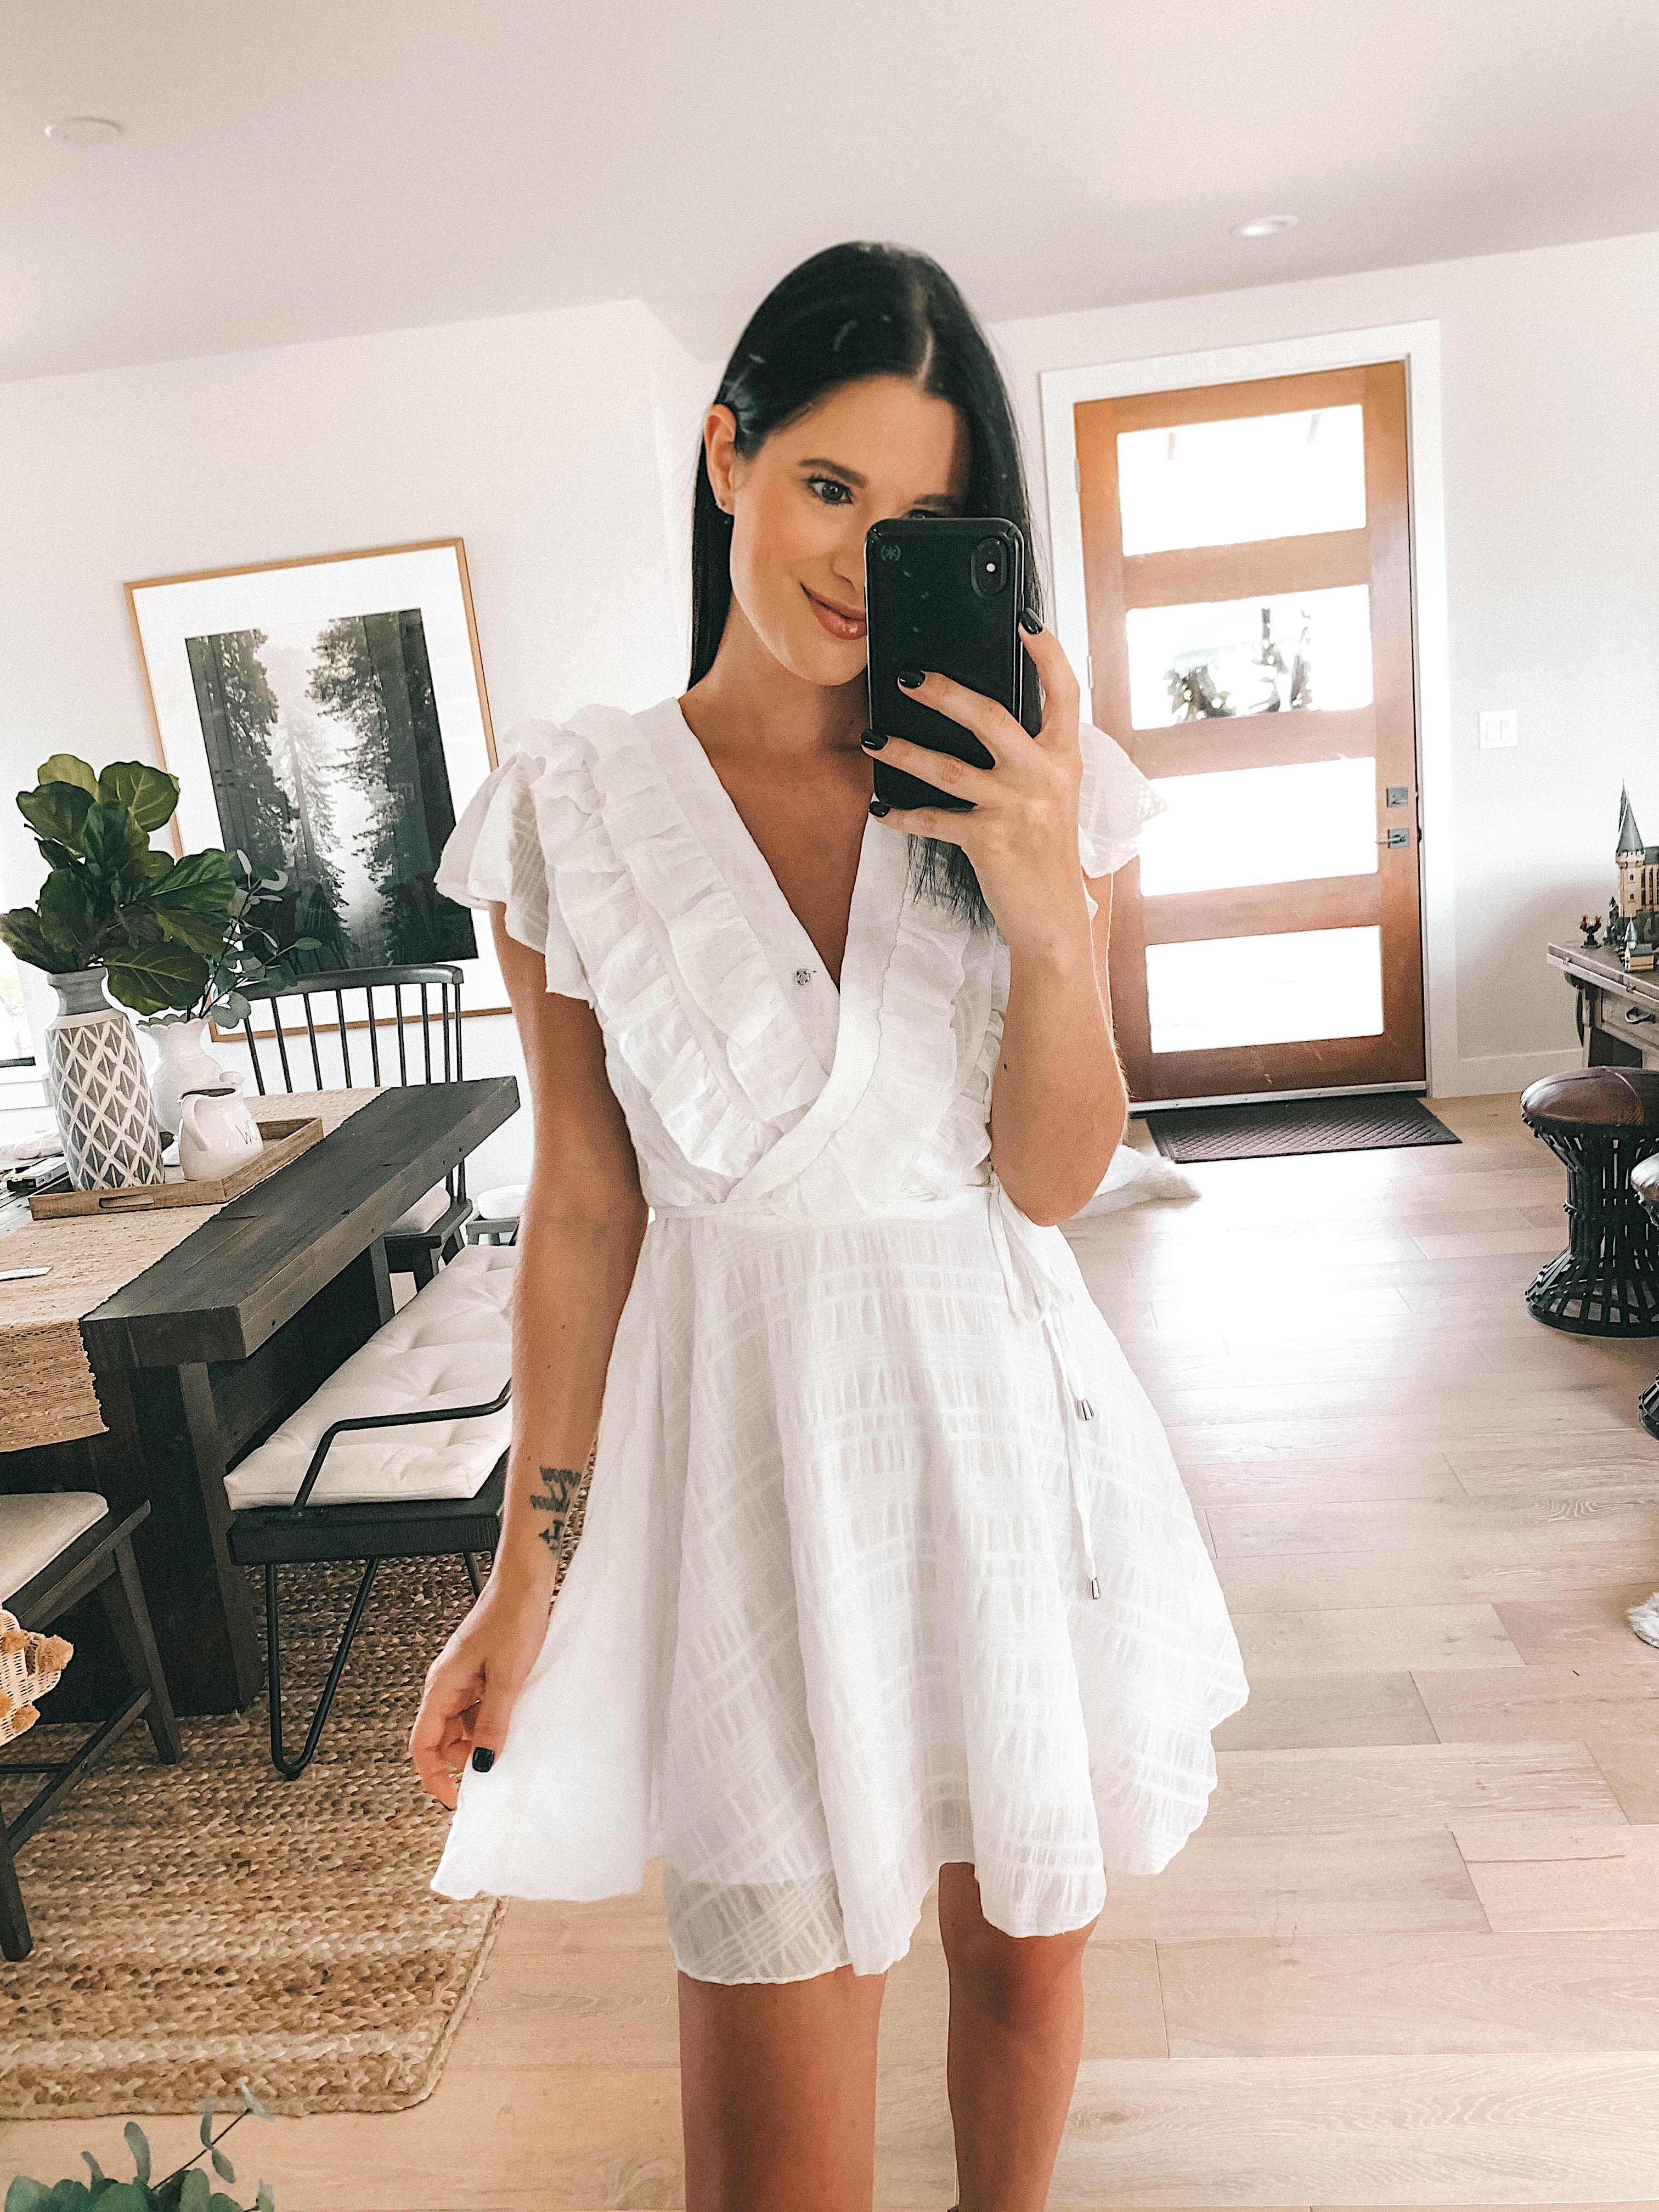 Goodnight Macaroon Summer Dresses Try-On by popular Austin fashion blog, Dressed to Kill: image of a woman standing in her house and wearing a Goodnight Macaroon 'DOBIE' White Ruffle Tie Waist Mini Dress.